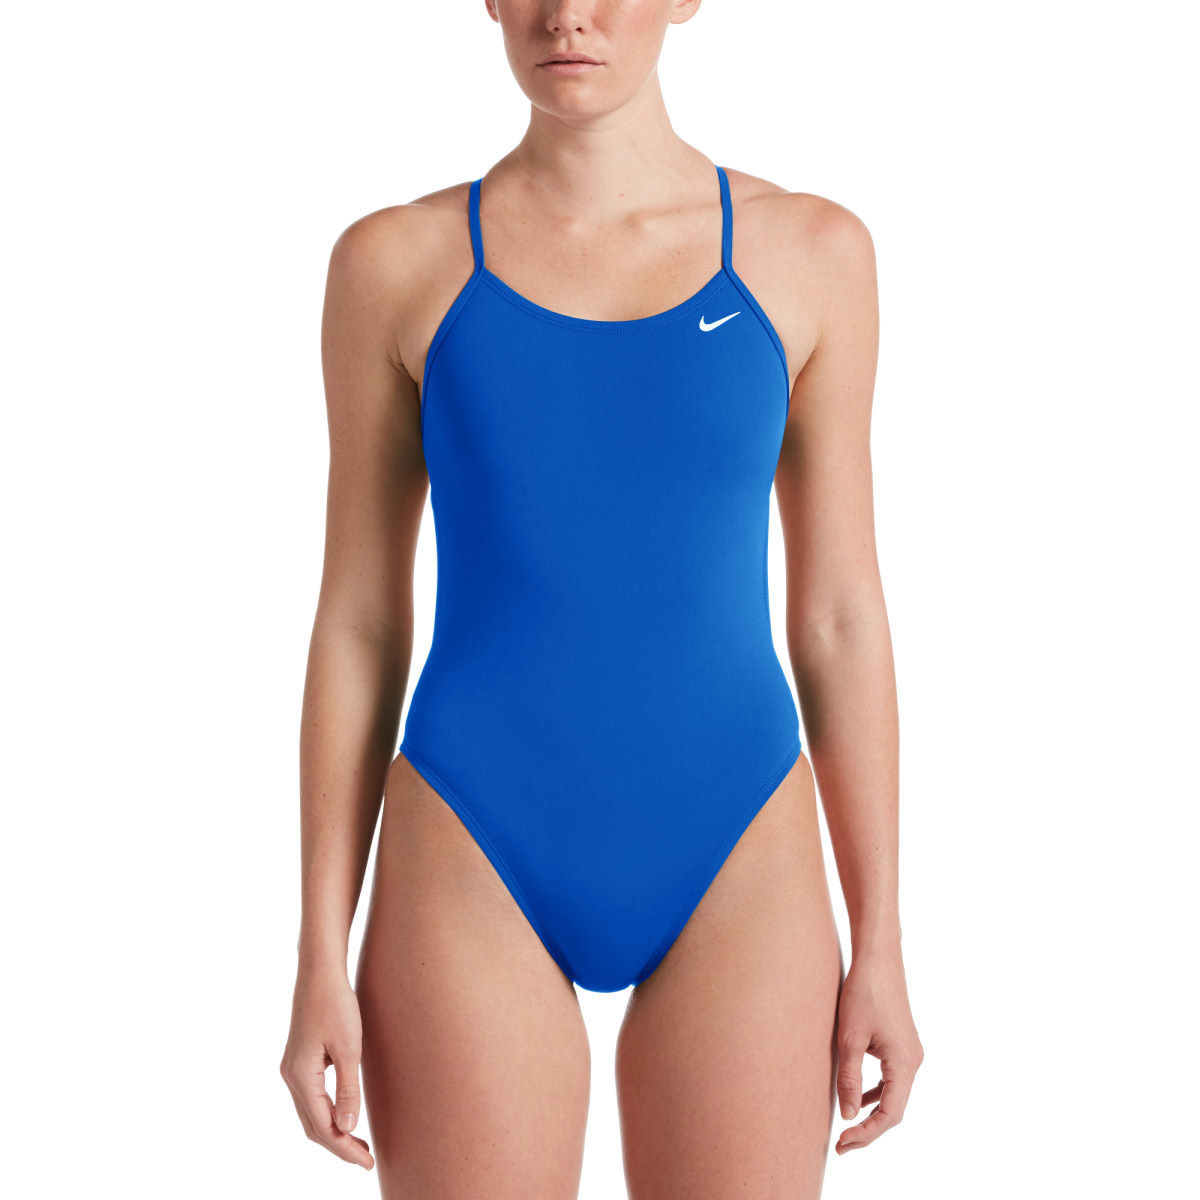 Nike Womens Hydrastrong Swimsuit (cutout) - 38 494 Game Royal